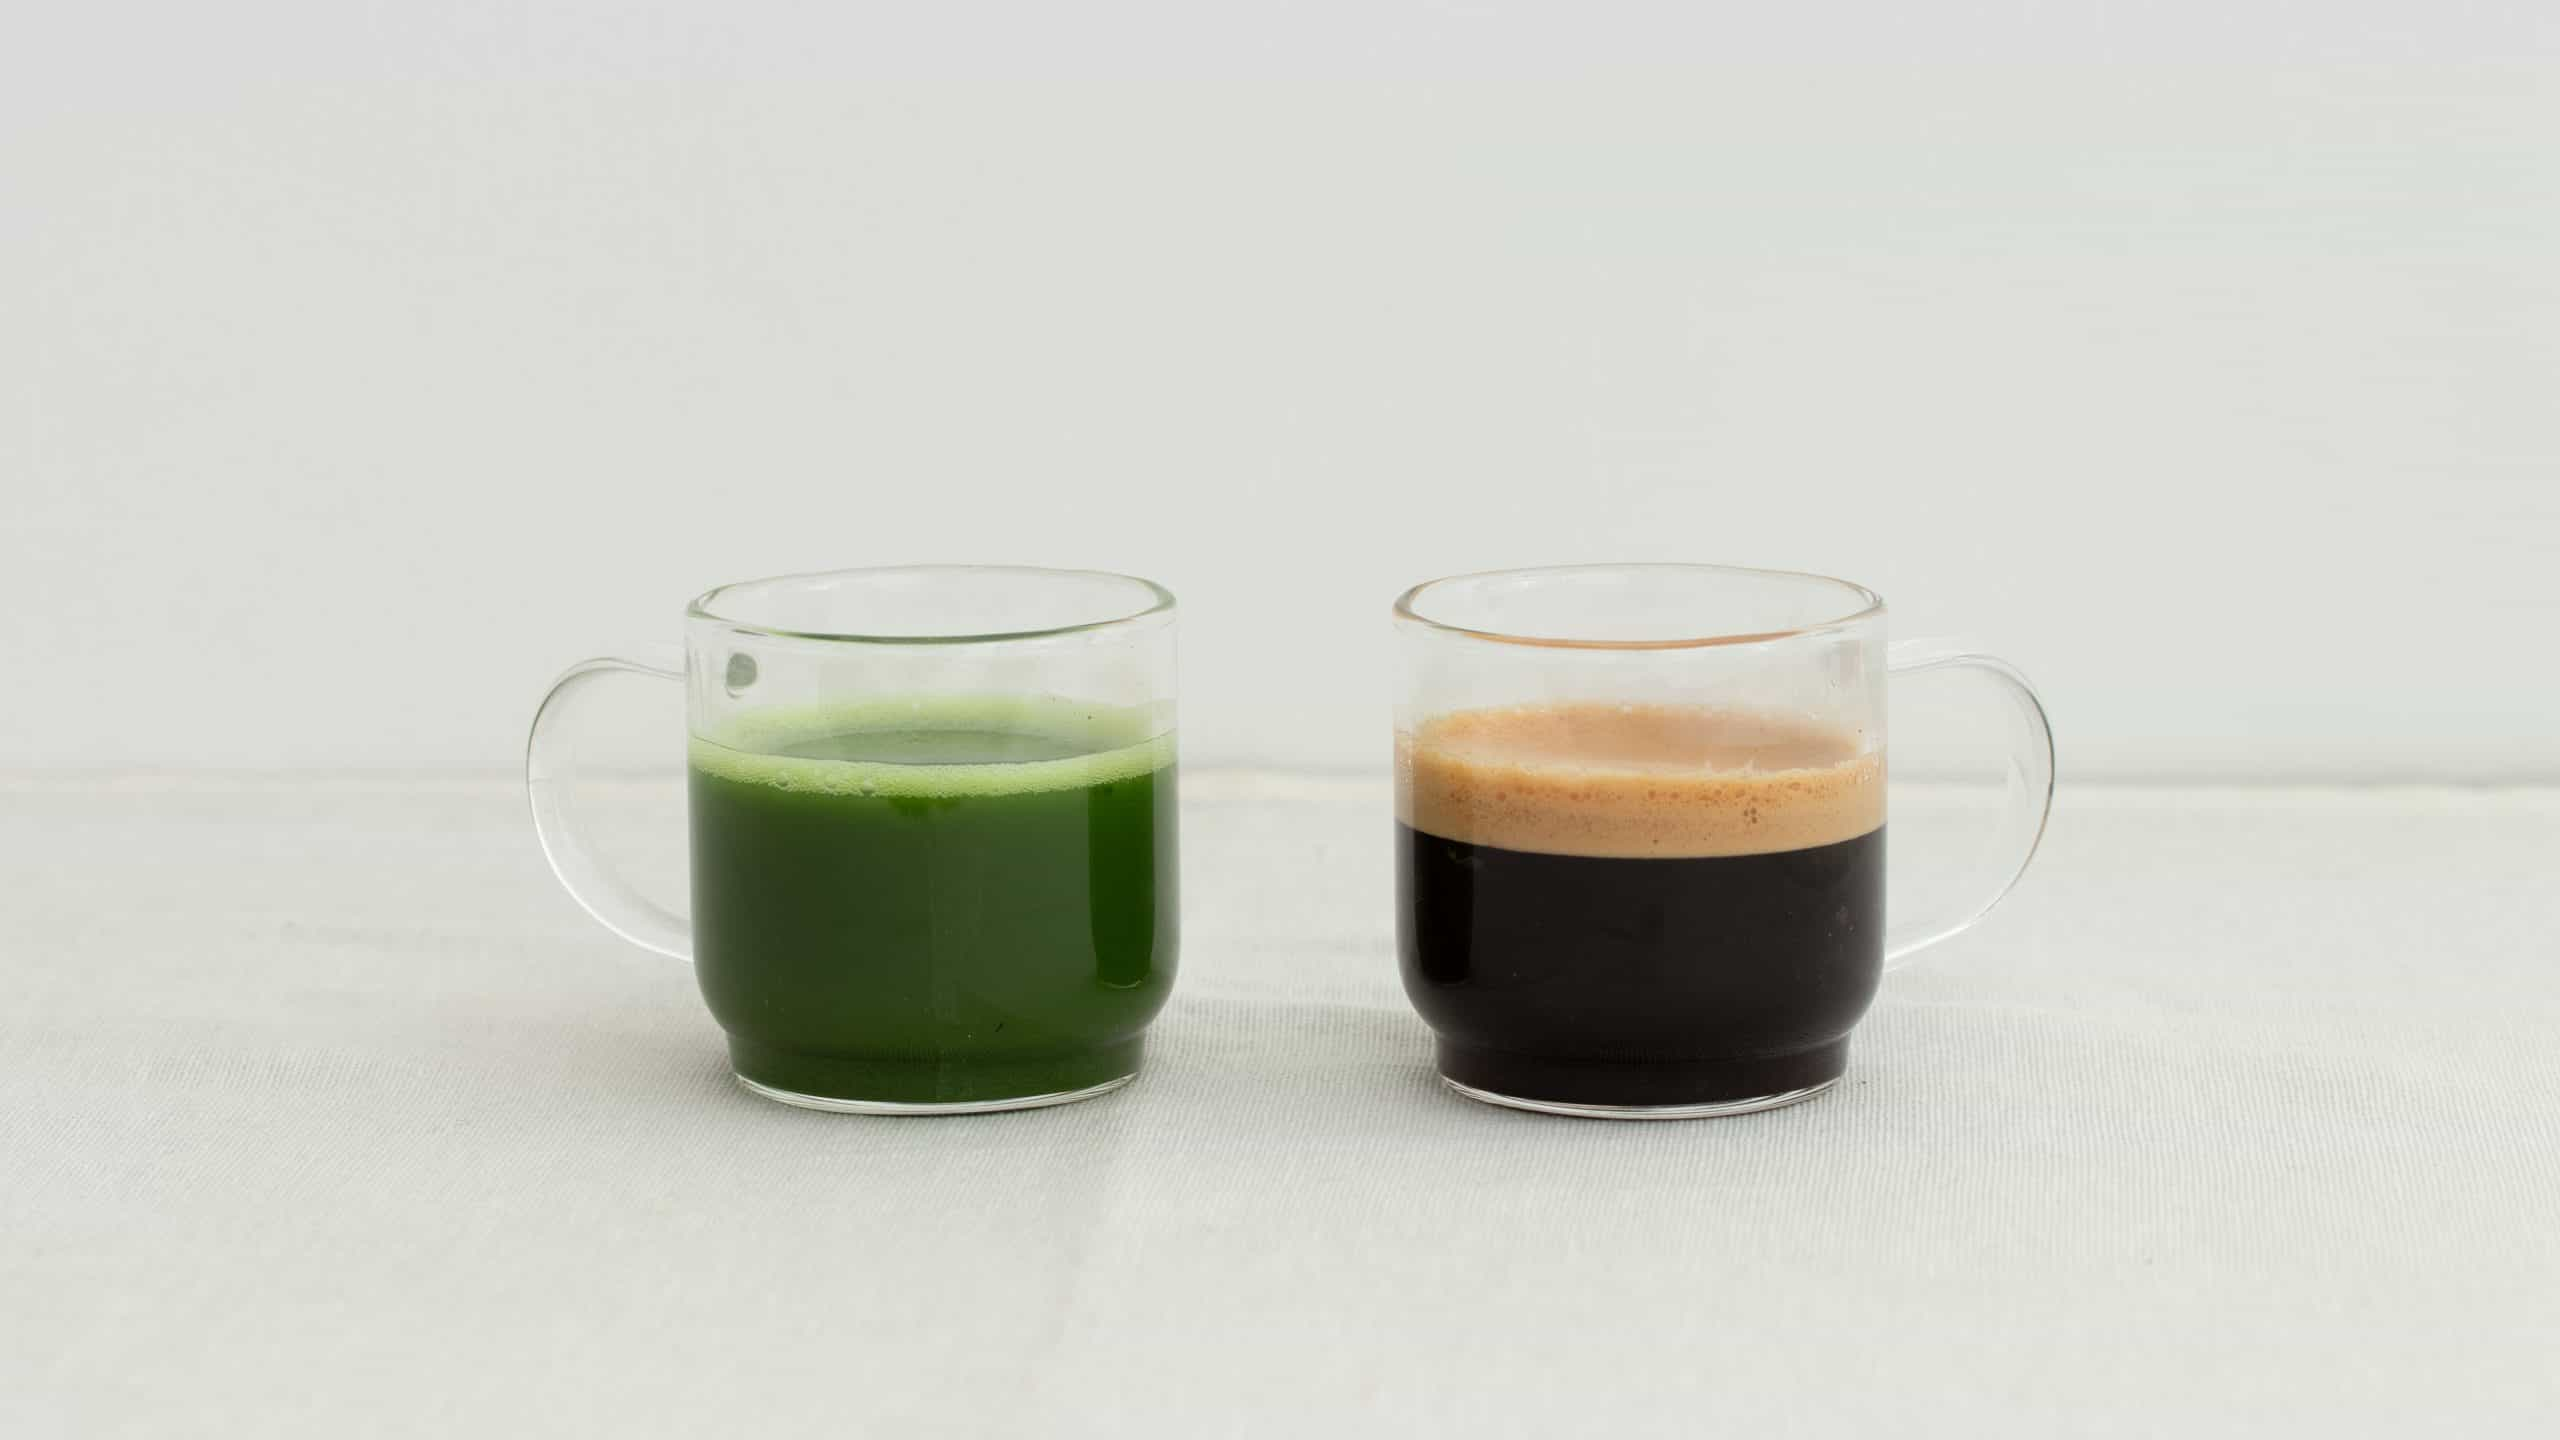 a cup of caffeine in matcha vs coffee comparison